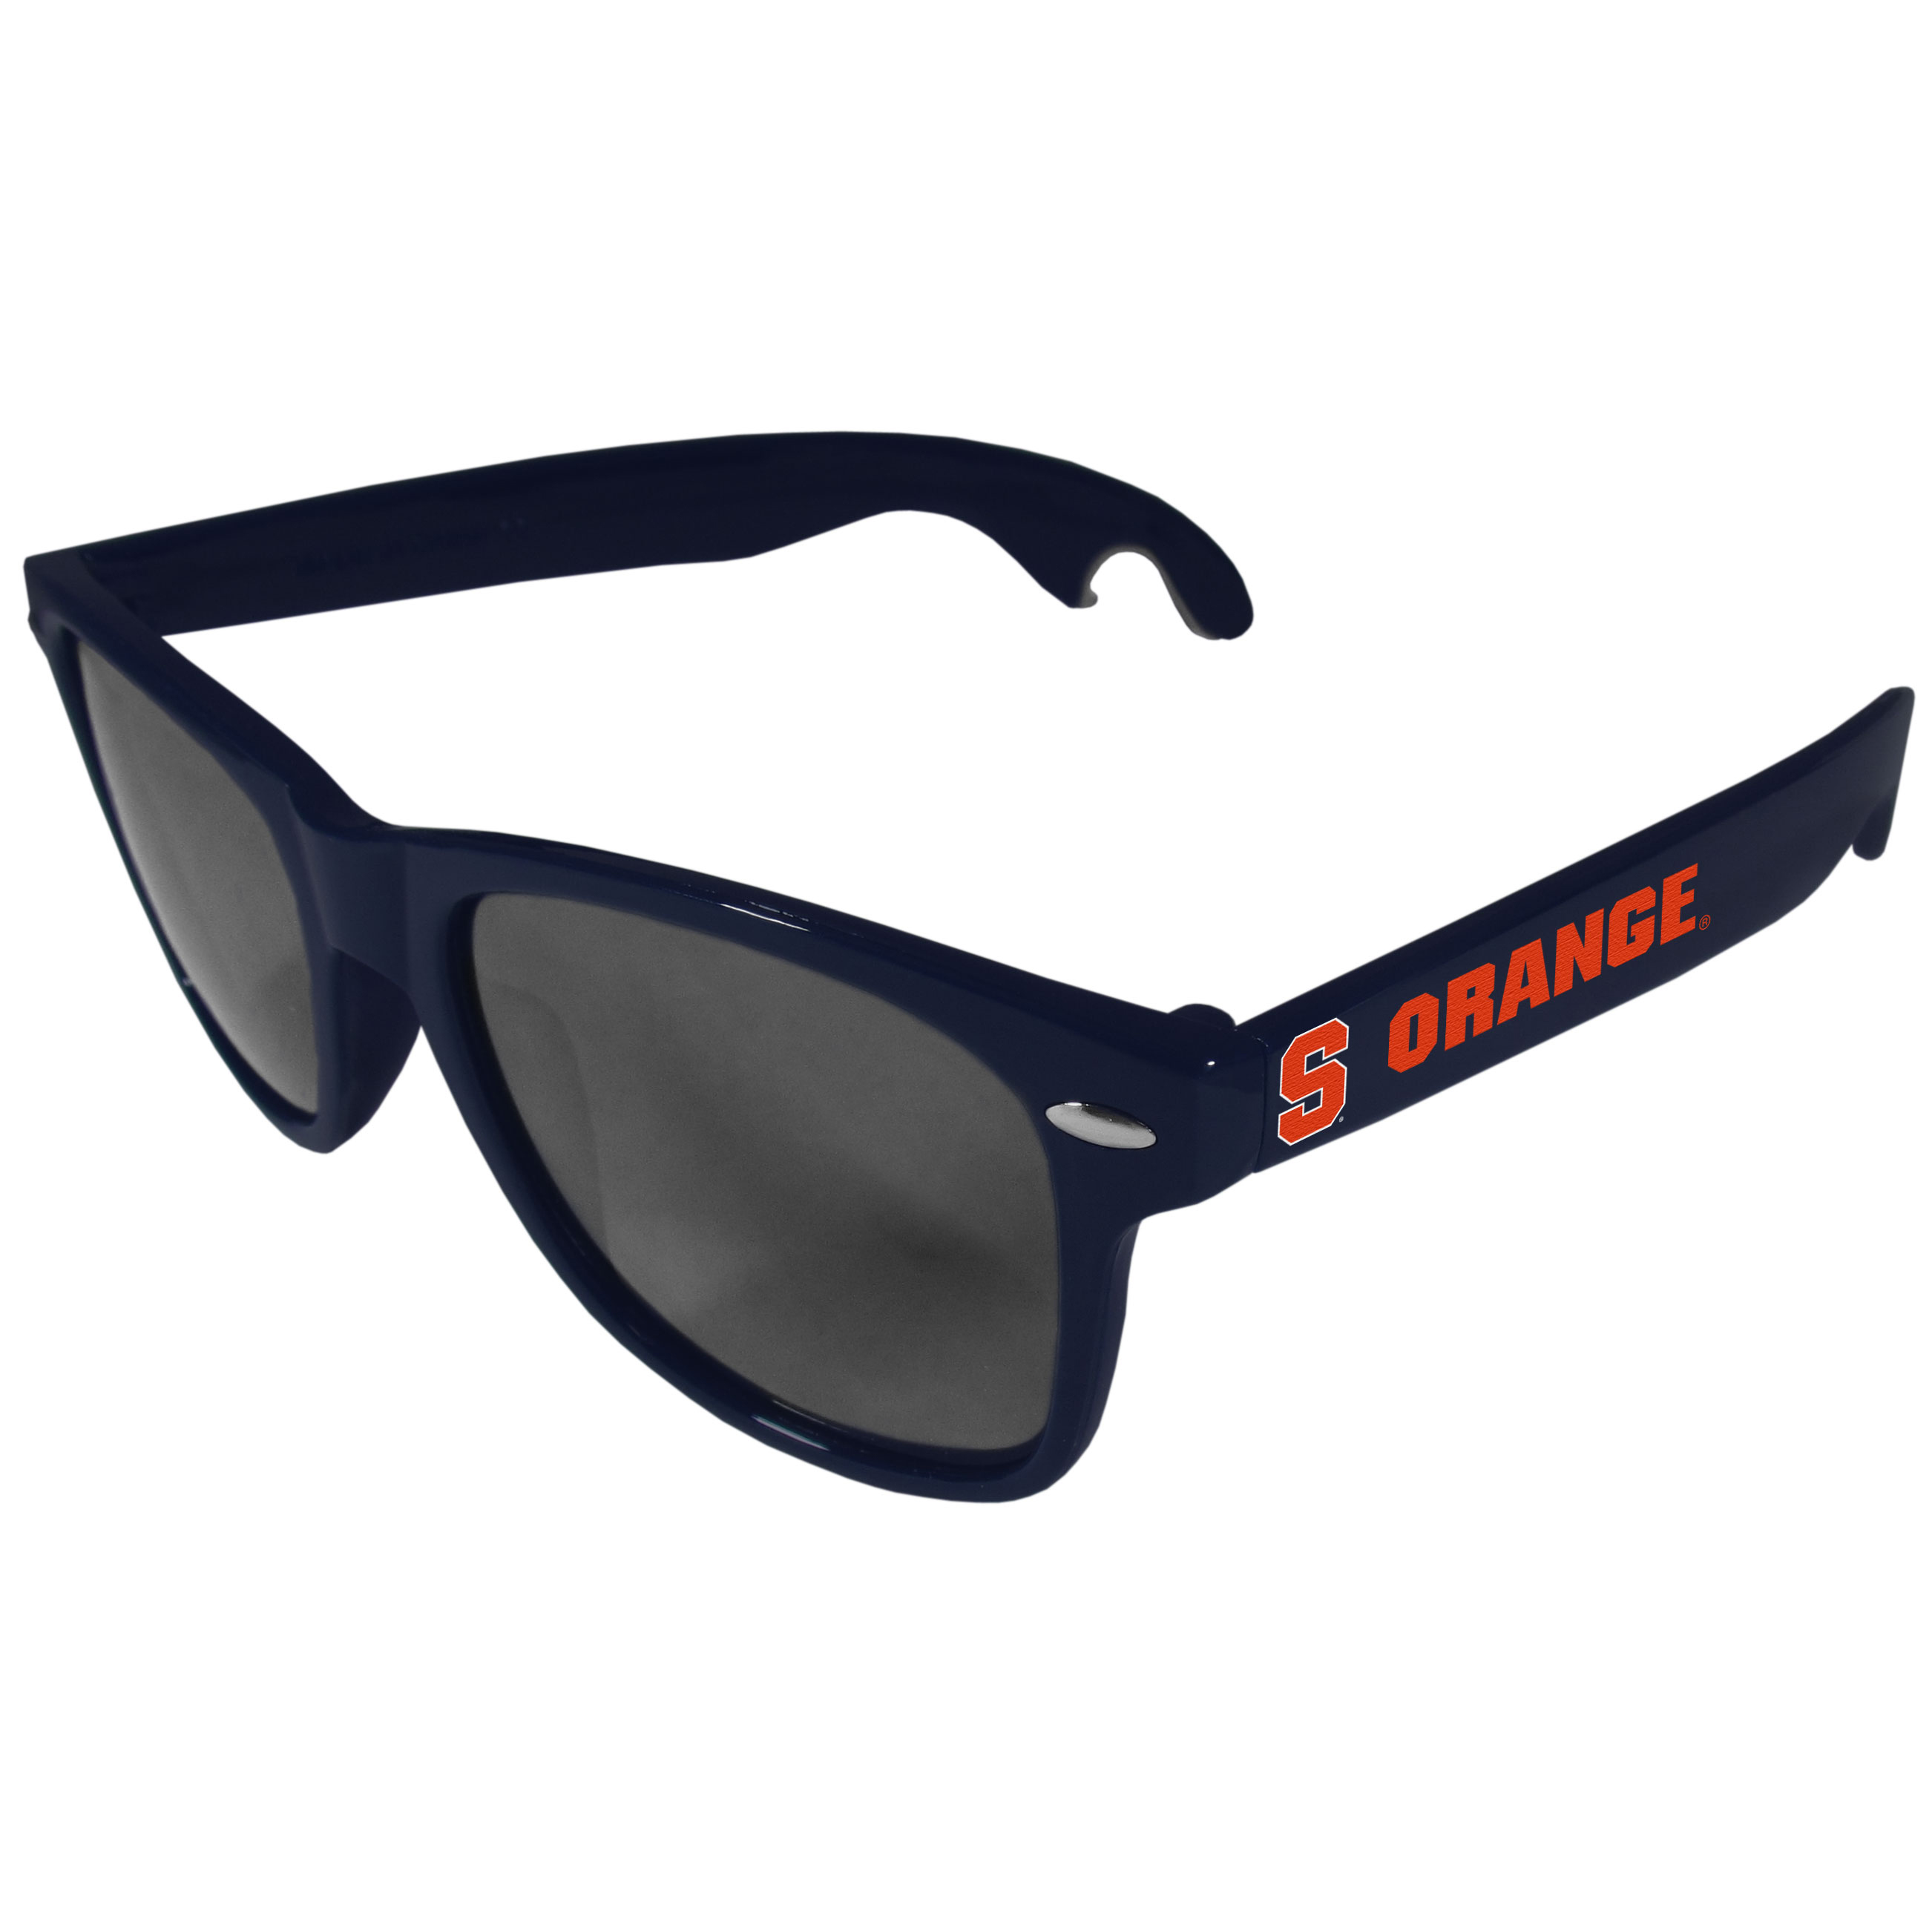 Syracuse Orange Beachfarer Bottle Opener Sunglasses, Dark Blue - Seriously, these sunglasses open bottles! Keep the party going with these amazing Syracuse Orange bottle opener sunglasses. The stylish retro frames feature team designs on the arms and functional bottle openers on the end of the arms. Whether you are at the beach or having a backyard BBQ on game day, these shades will keep your eyes protected with 100% UVA/UVB protection and keep you hydrated with the handy bottle opener arms.